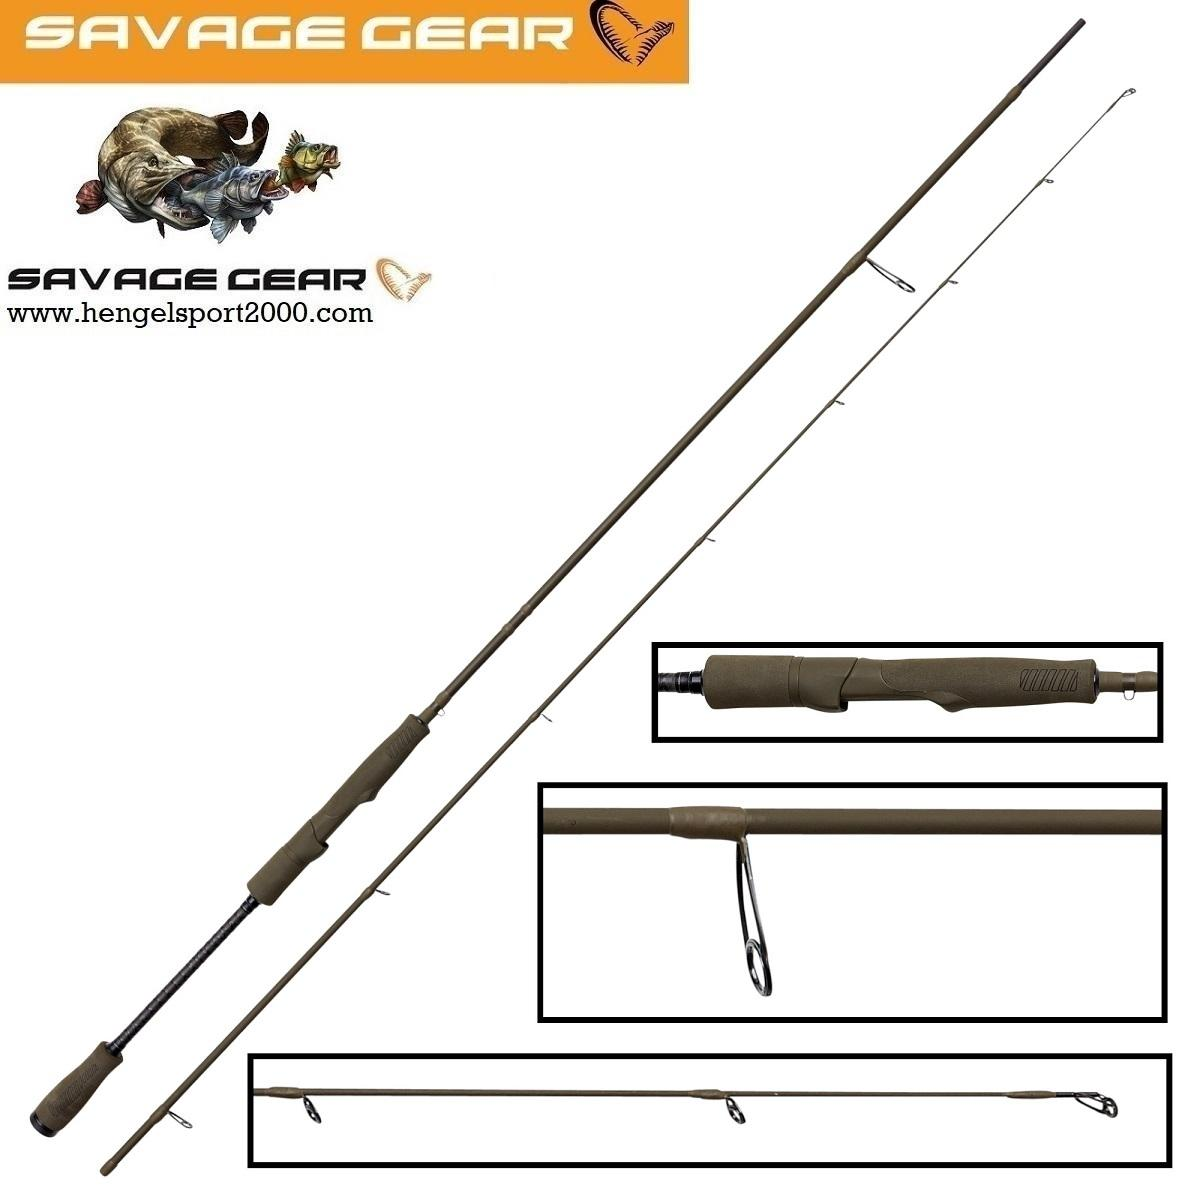 Savage Gear SG4 Light Game Rod 221 cm 5 - 18 gram